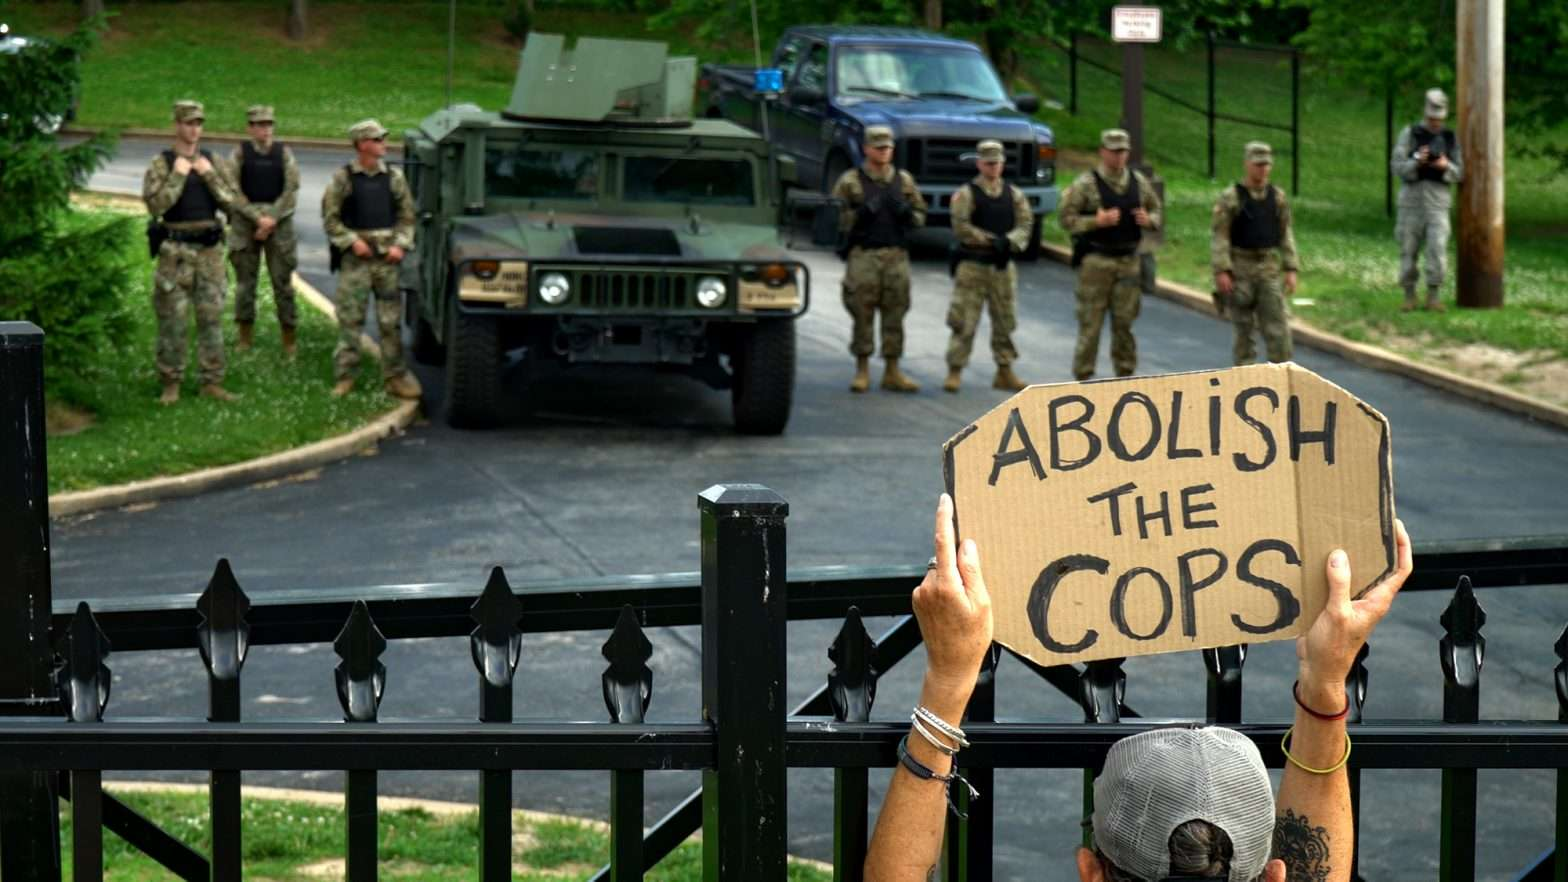 Protesters are met with MP National Guard at Florissant Police Department in St. Louis County. credit craig currie